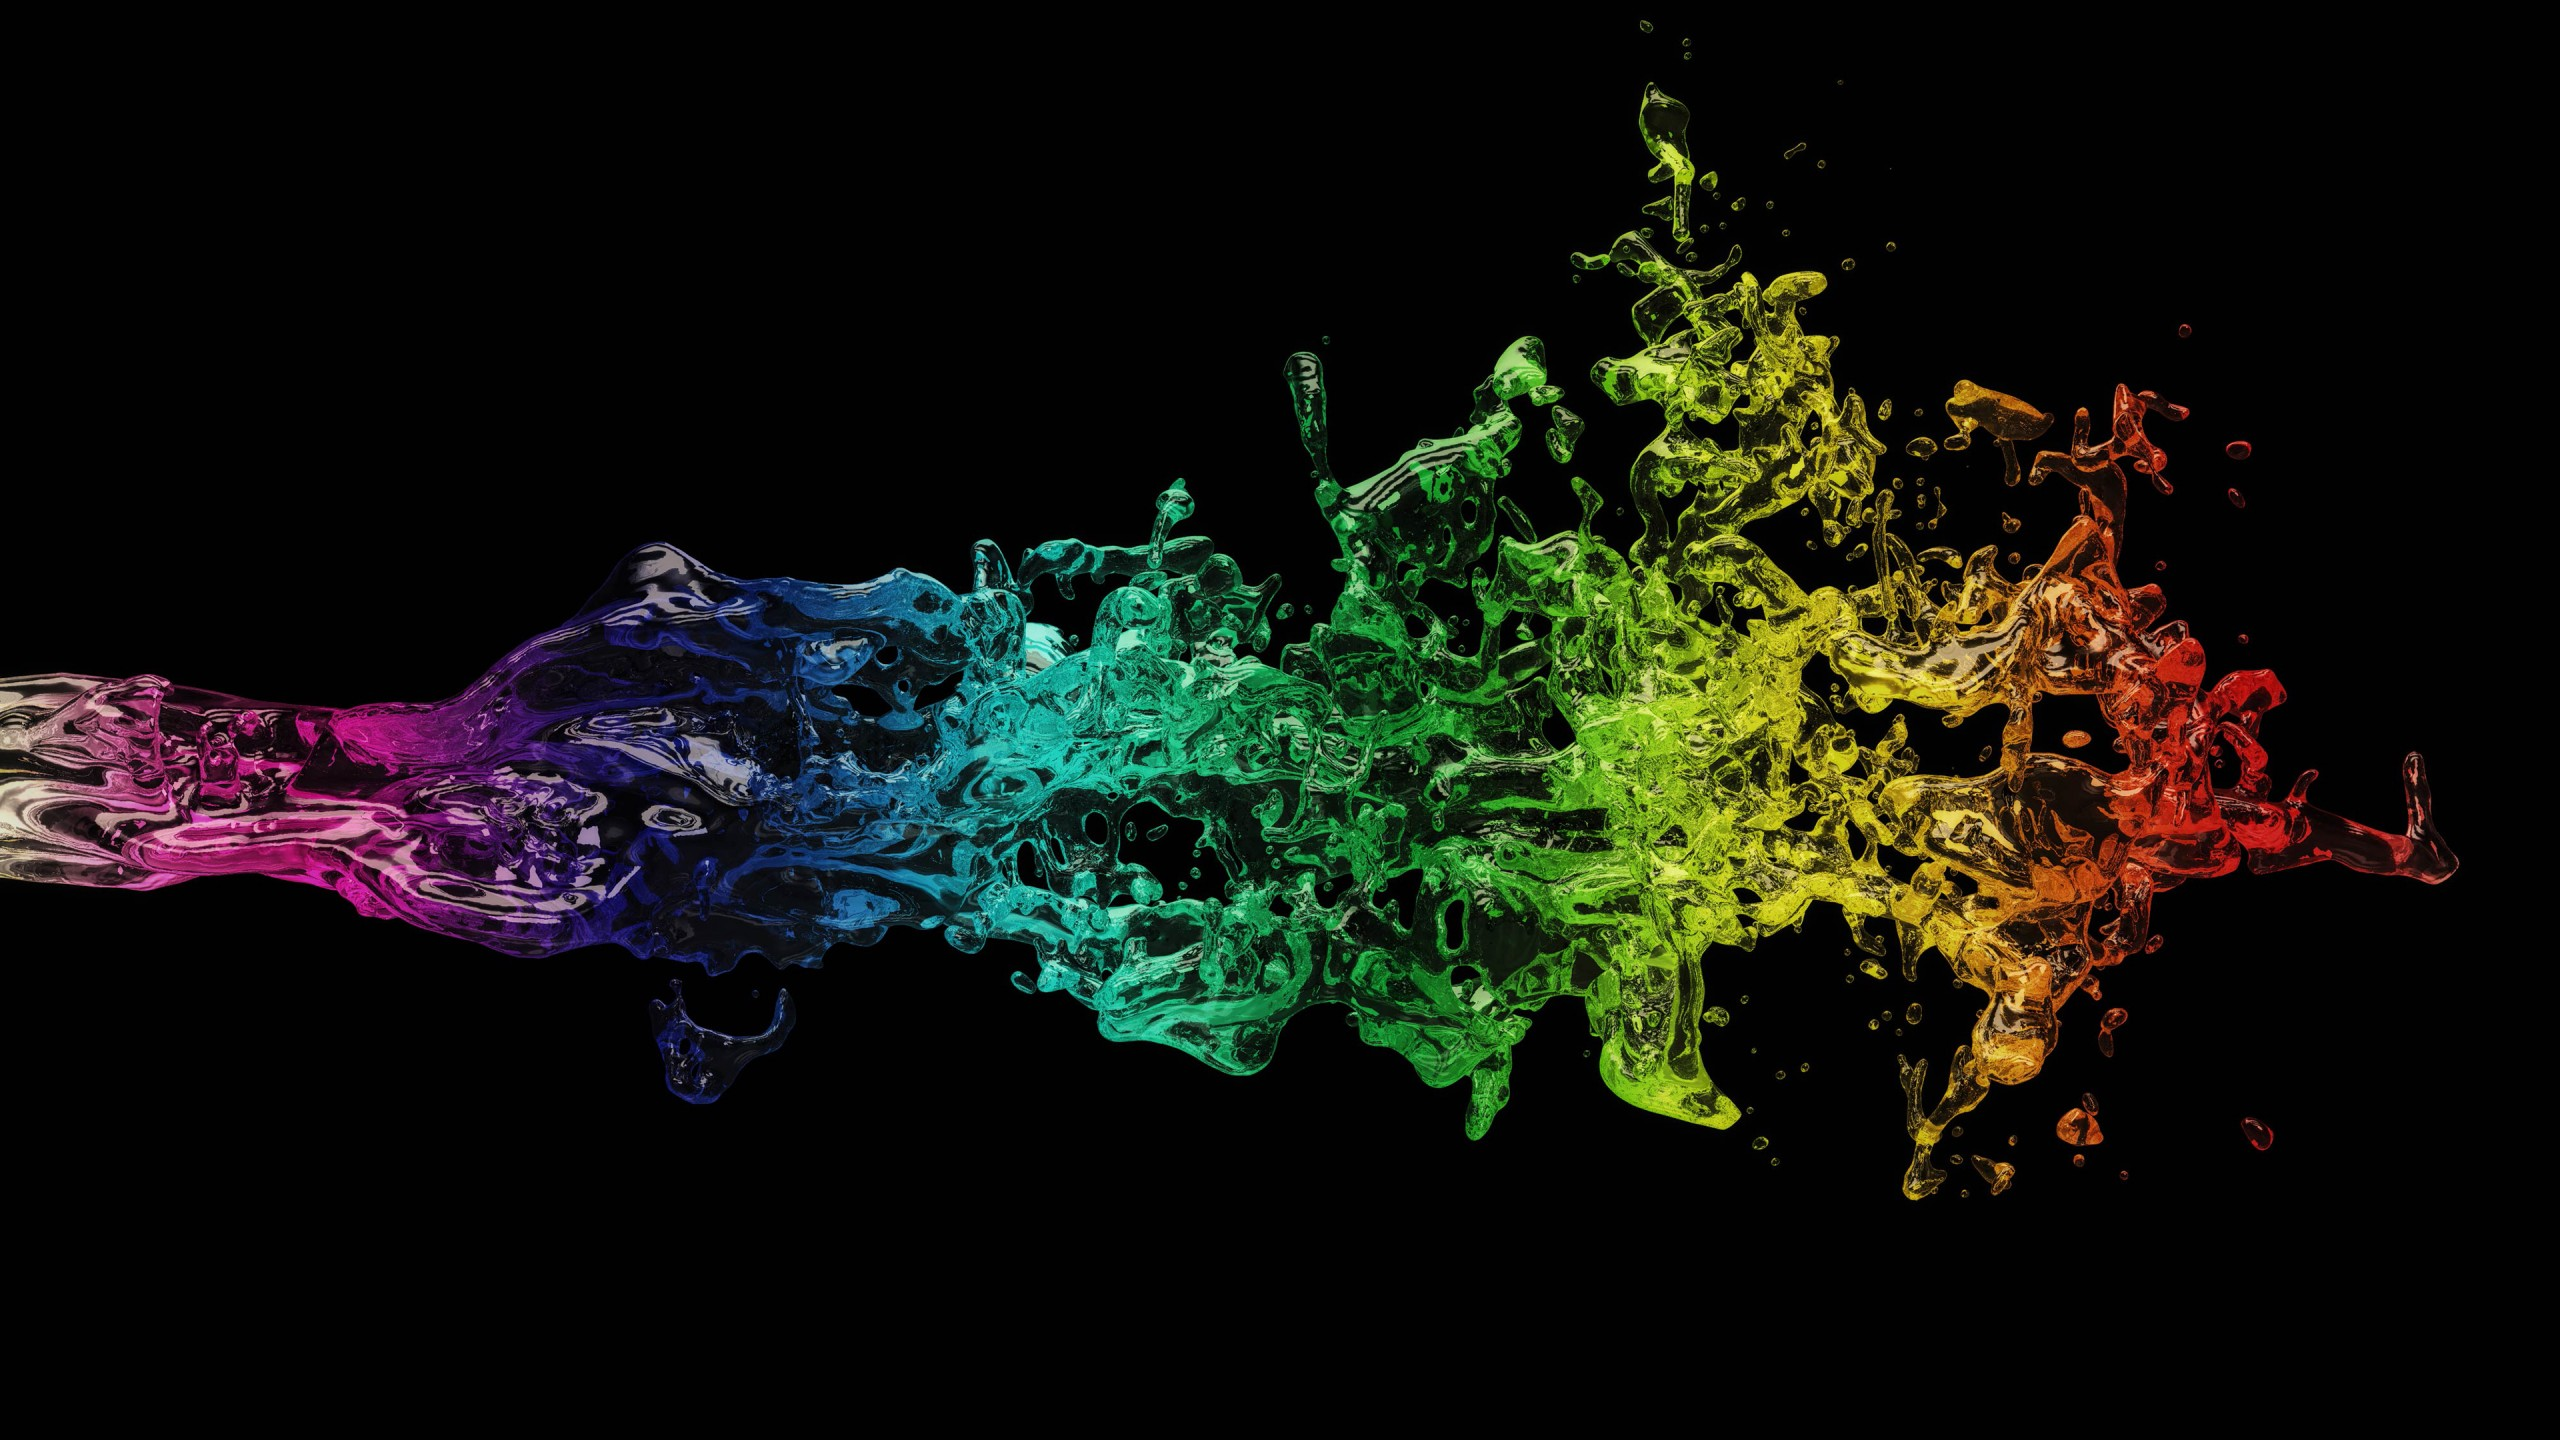 Abstract Wallpaper For Pc 4k Hd Wallpapers Hd Wallpapers Id 31720